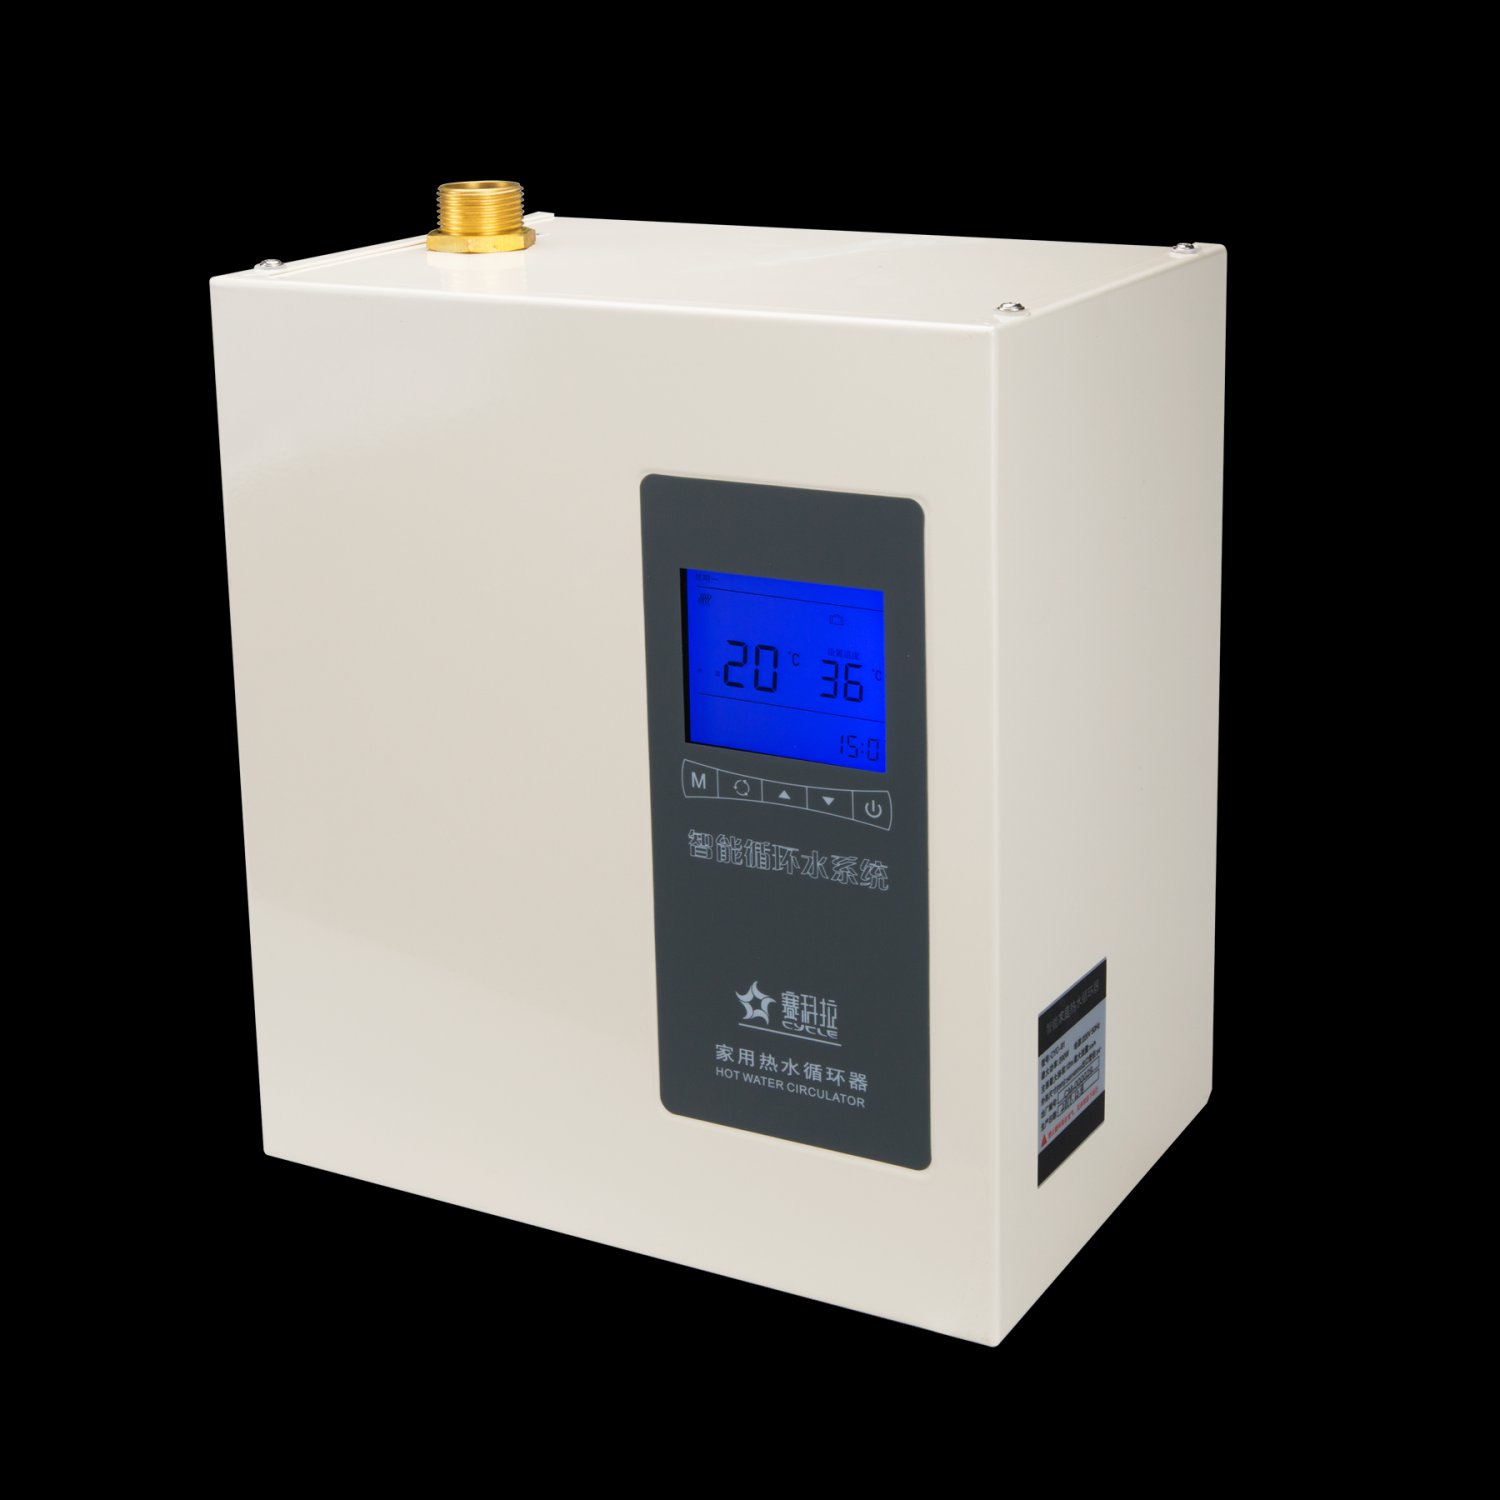 Model 91 multi layer / large space intelligent central hot-water circulator